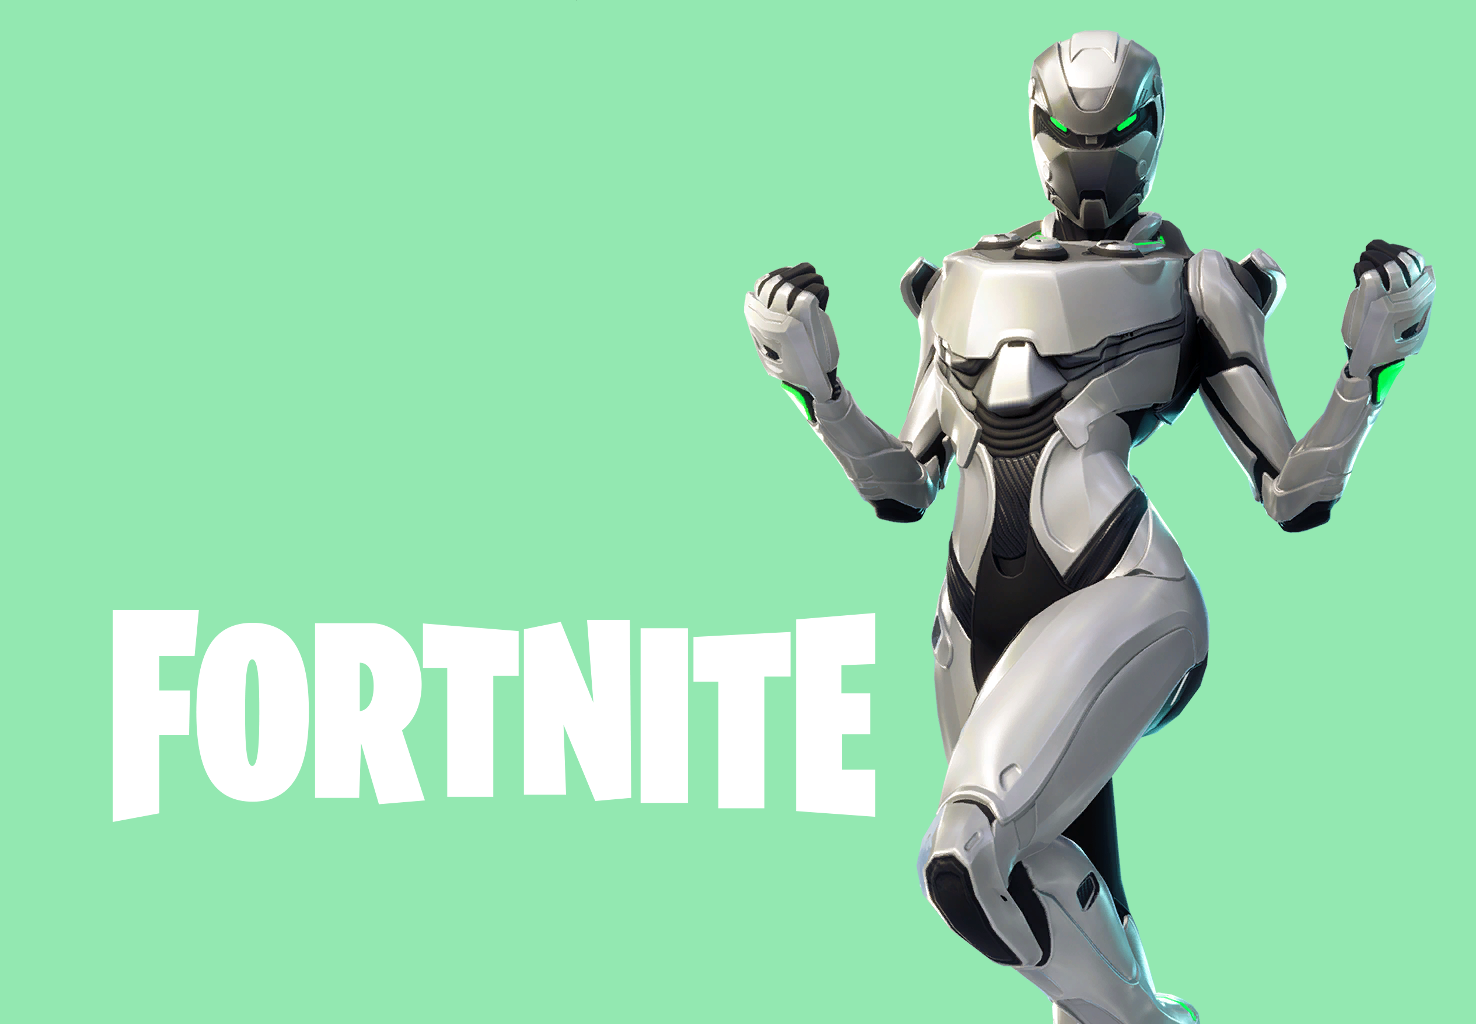 Fortnite Eon Skin Bundle u. 500 V-Bucks Xbox One